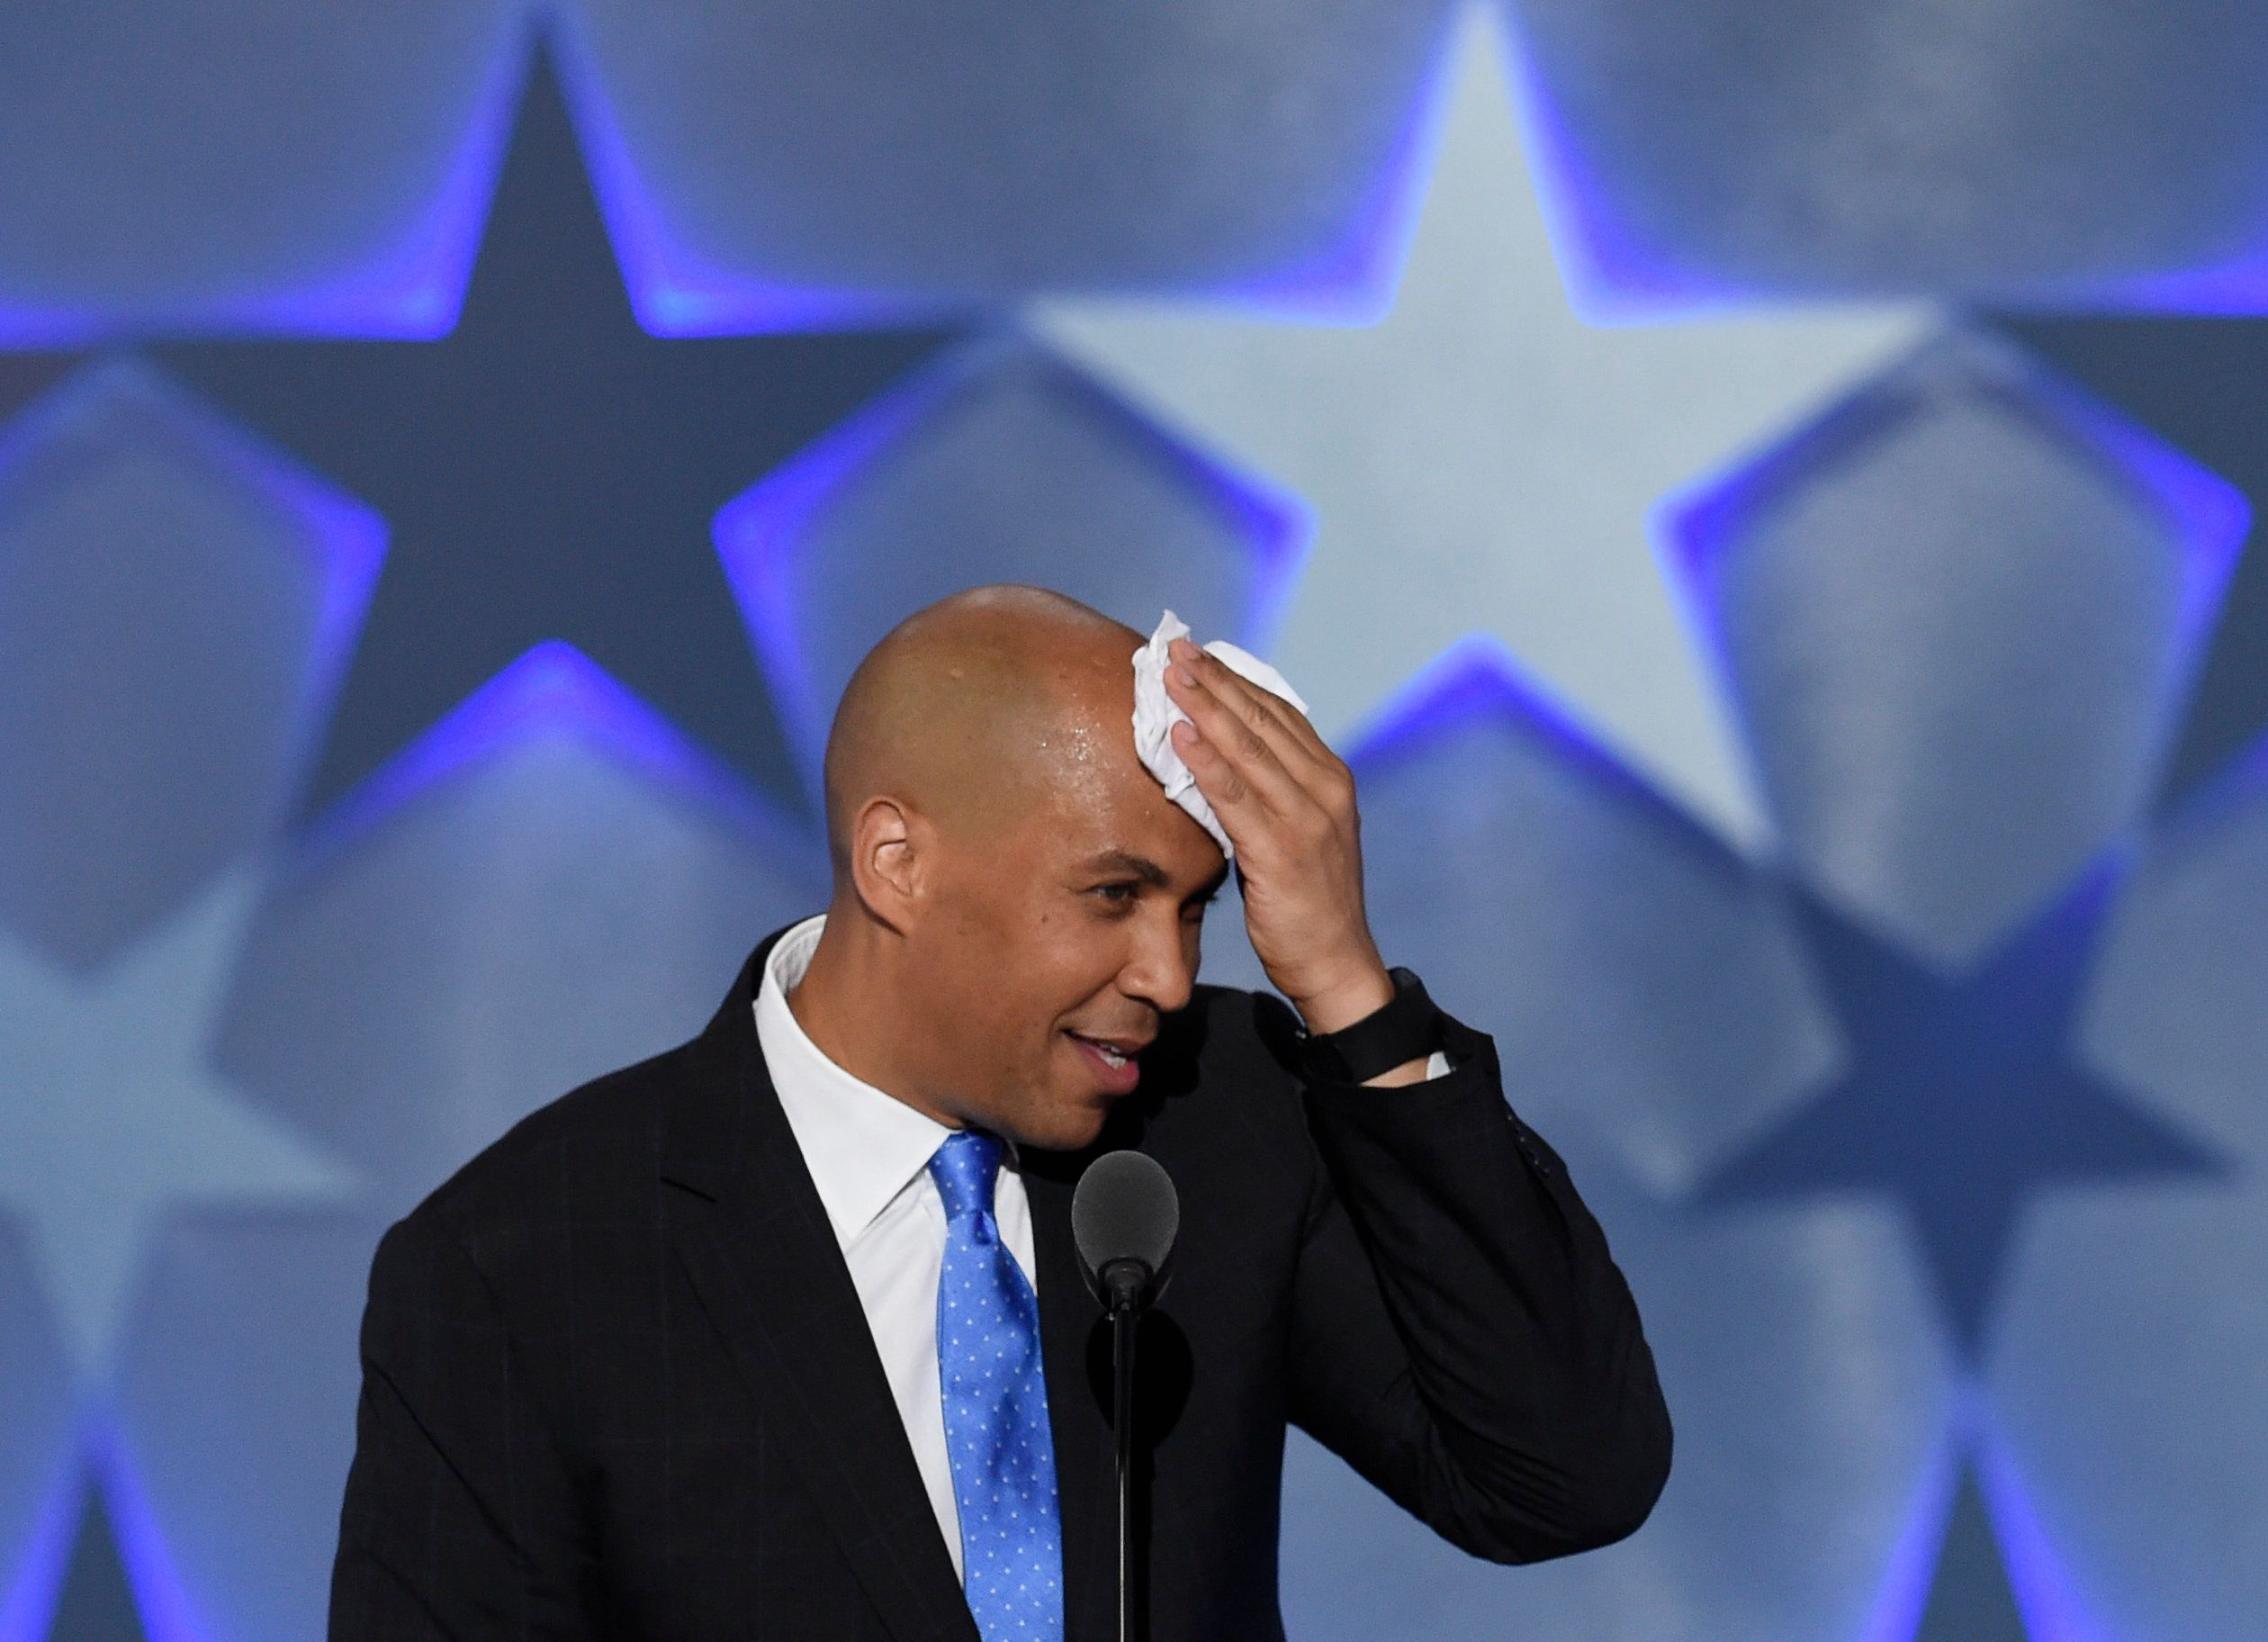 Sen. Cory Booker (D-N.J.) voted against a budget resolution that would have allowed the U.S. to import prescription drugs fro